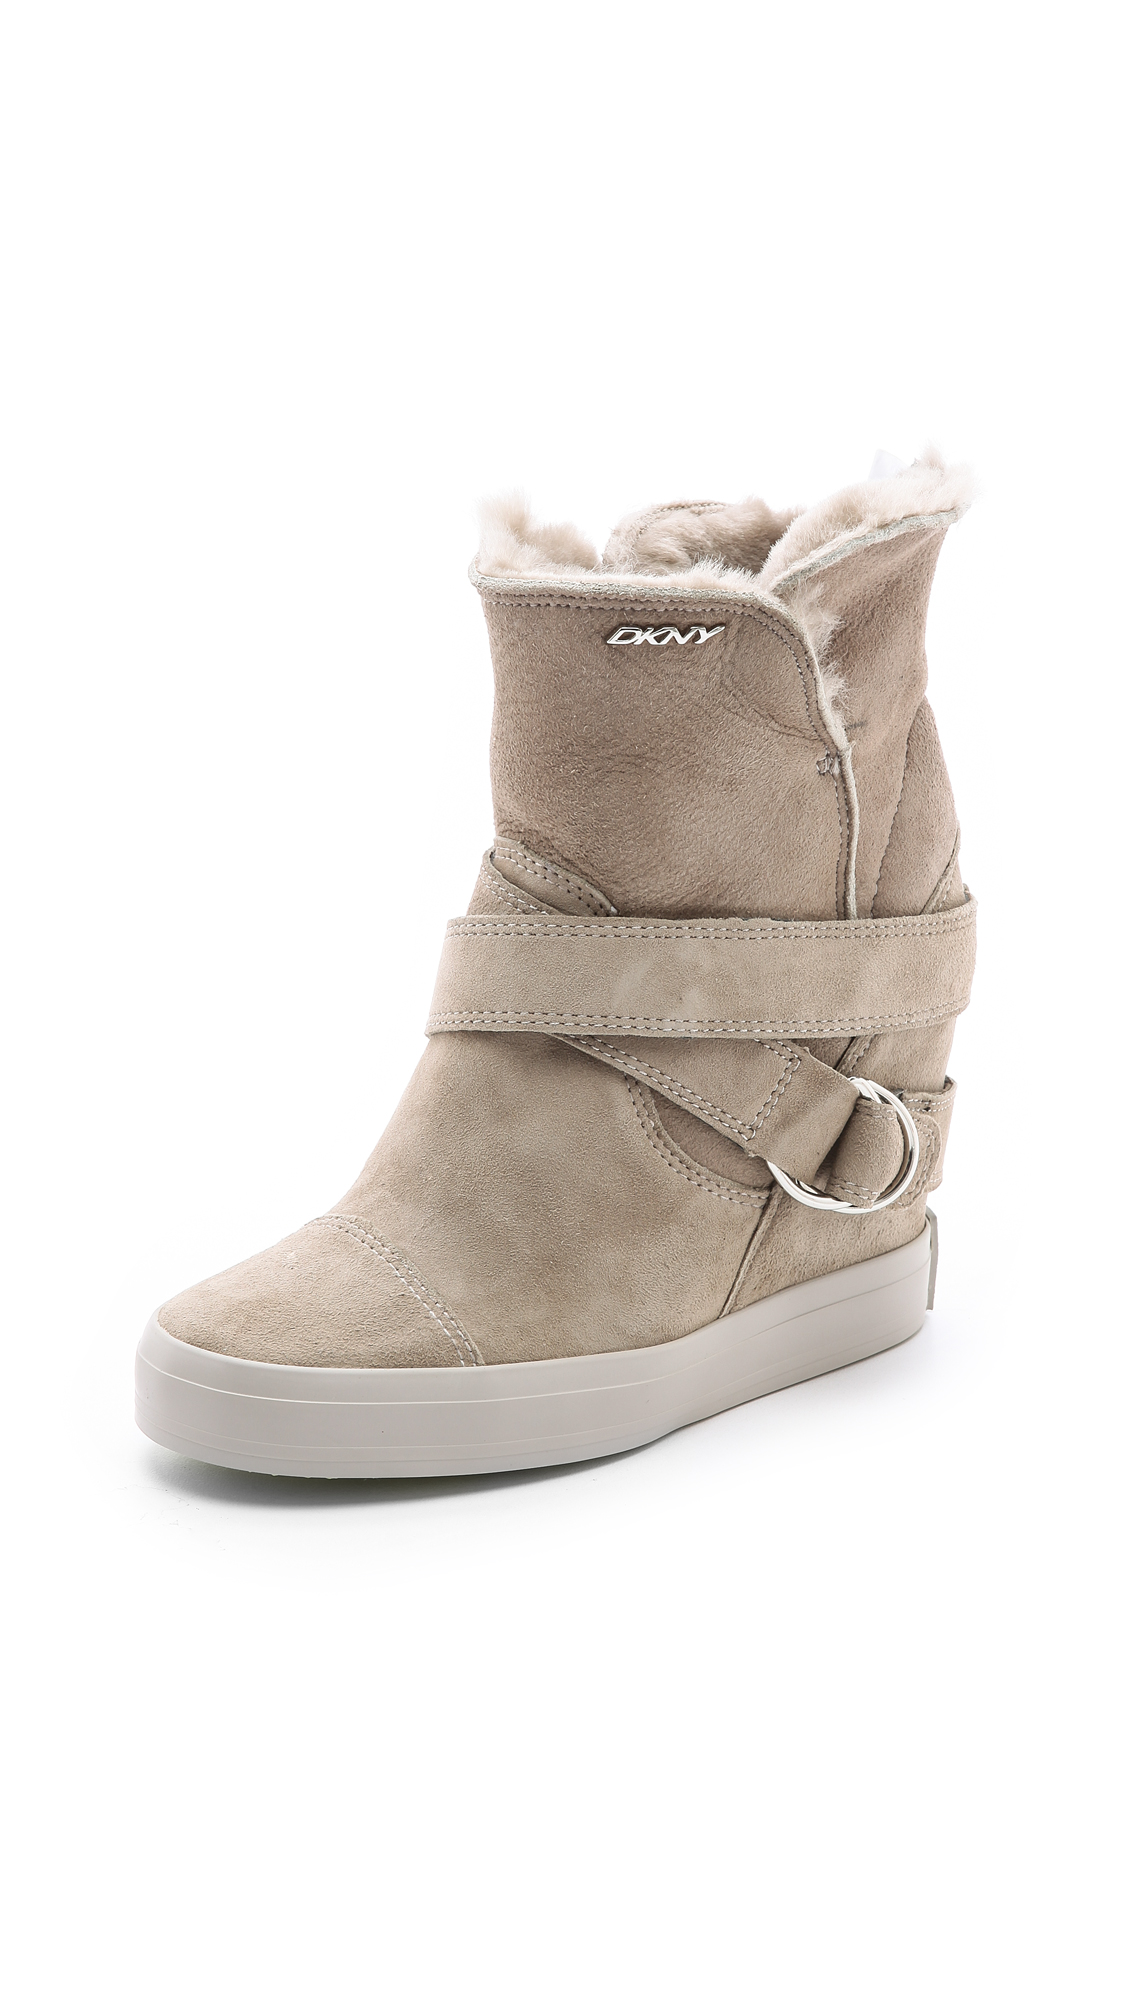 Dkny Great Shearling Sneaker Booties In Natural Lyst